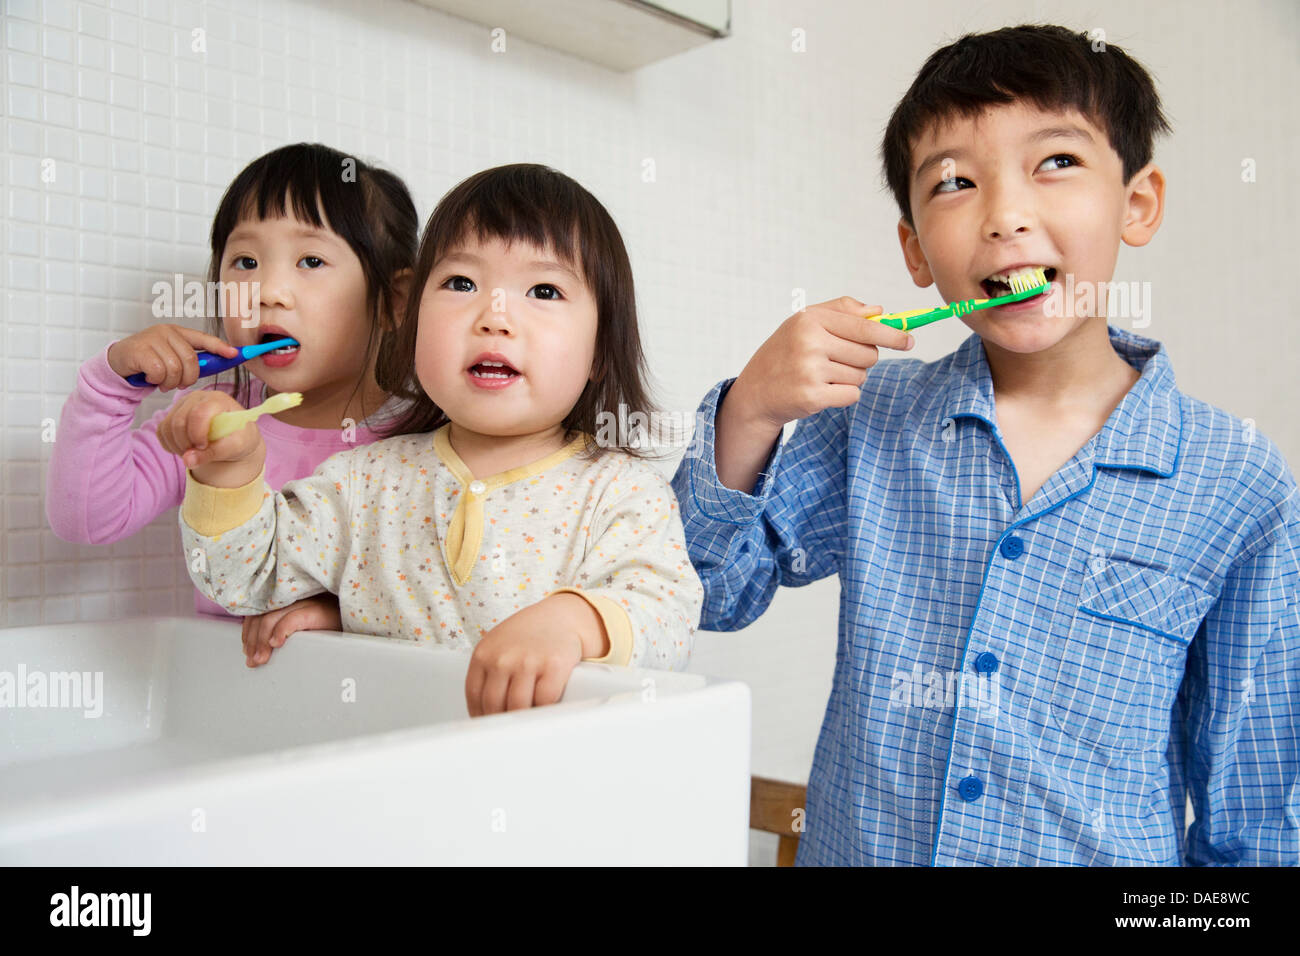 Brother and sisters cleaning teeth - Stock Image